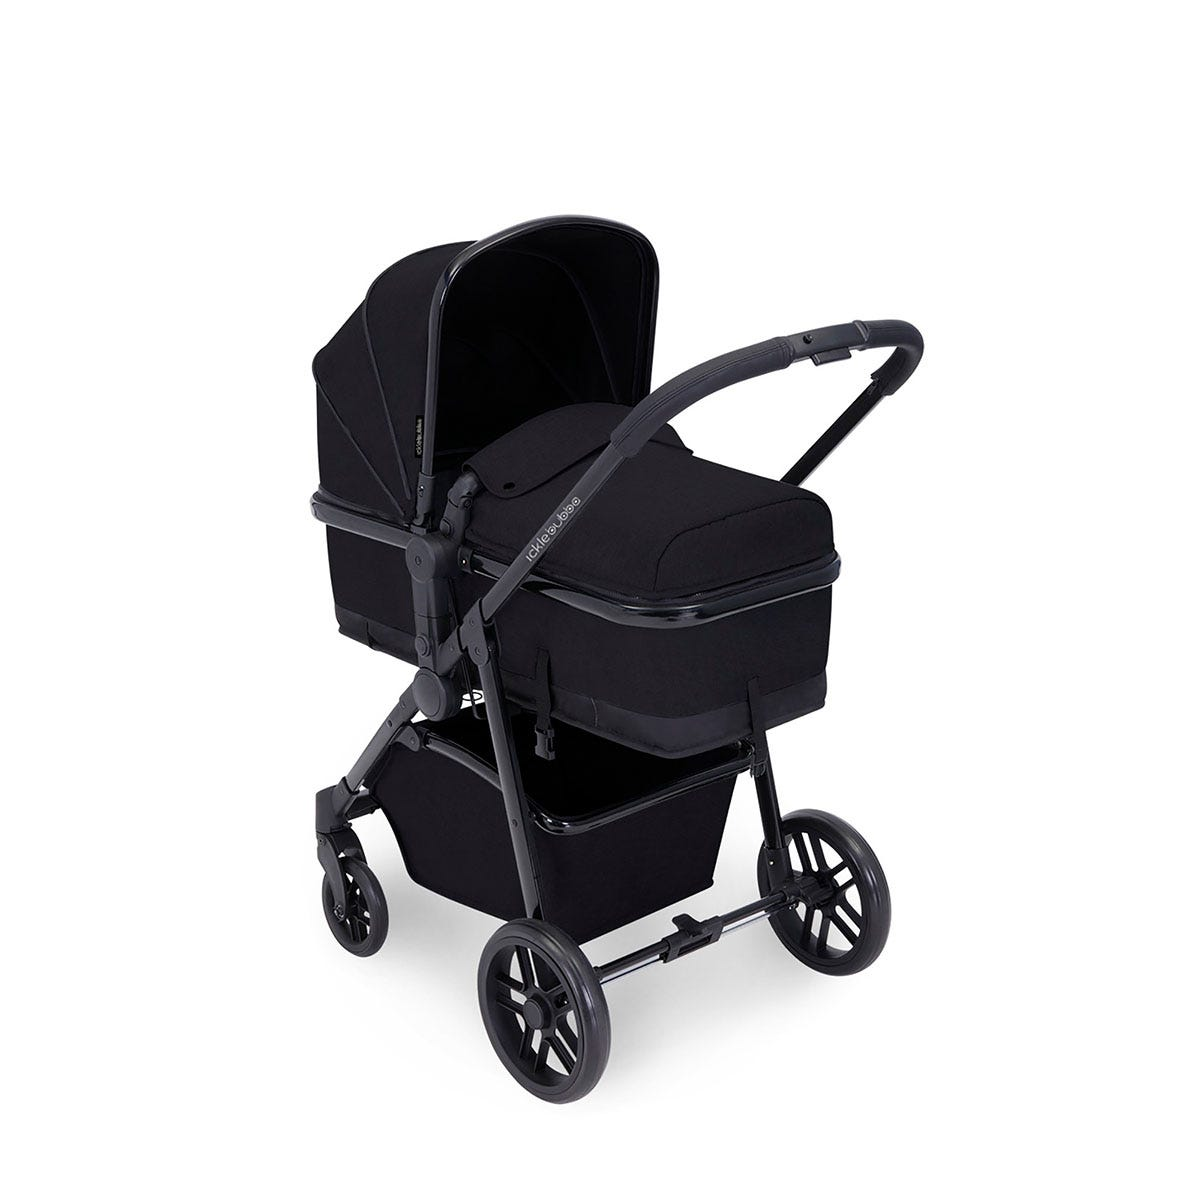 Ickle Bubba Moon 3 in 1 Travel System ISOFIX - Black on Black with Black Handles